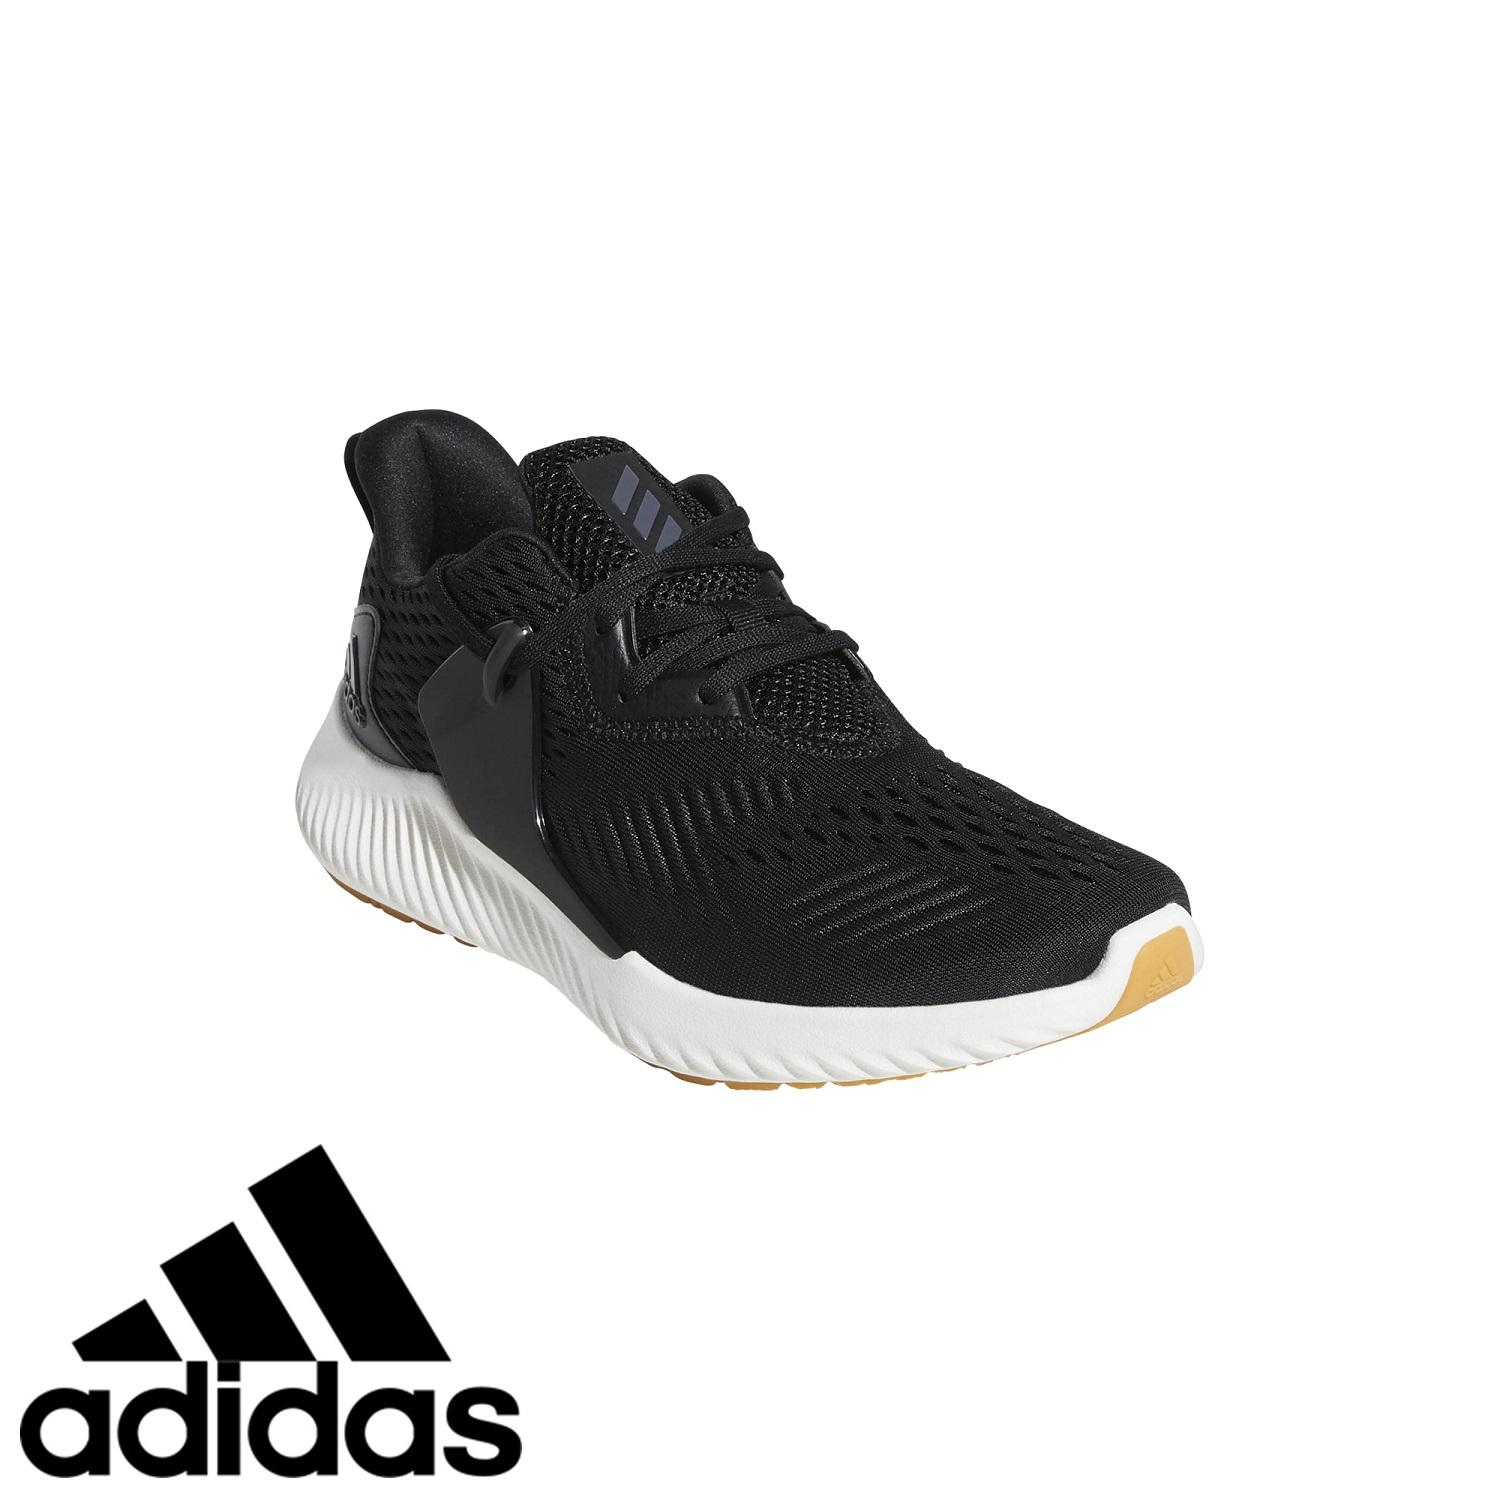 180d2e404 Adidas Sports Shoes Philippines - Adidas Sports Clothing for sale ...